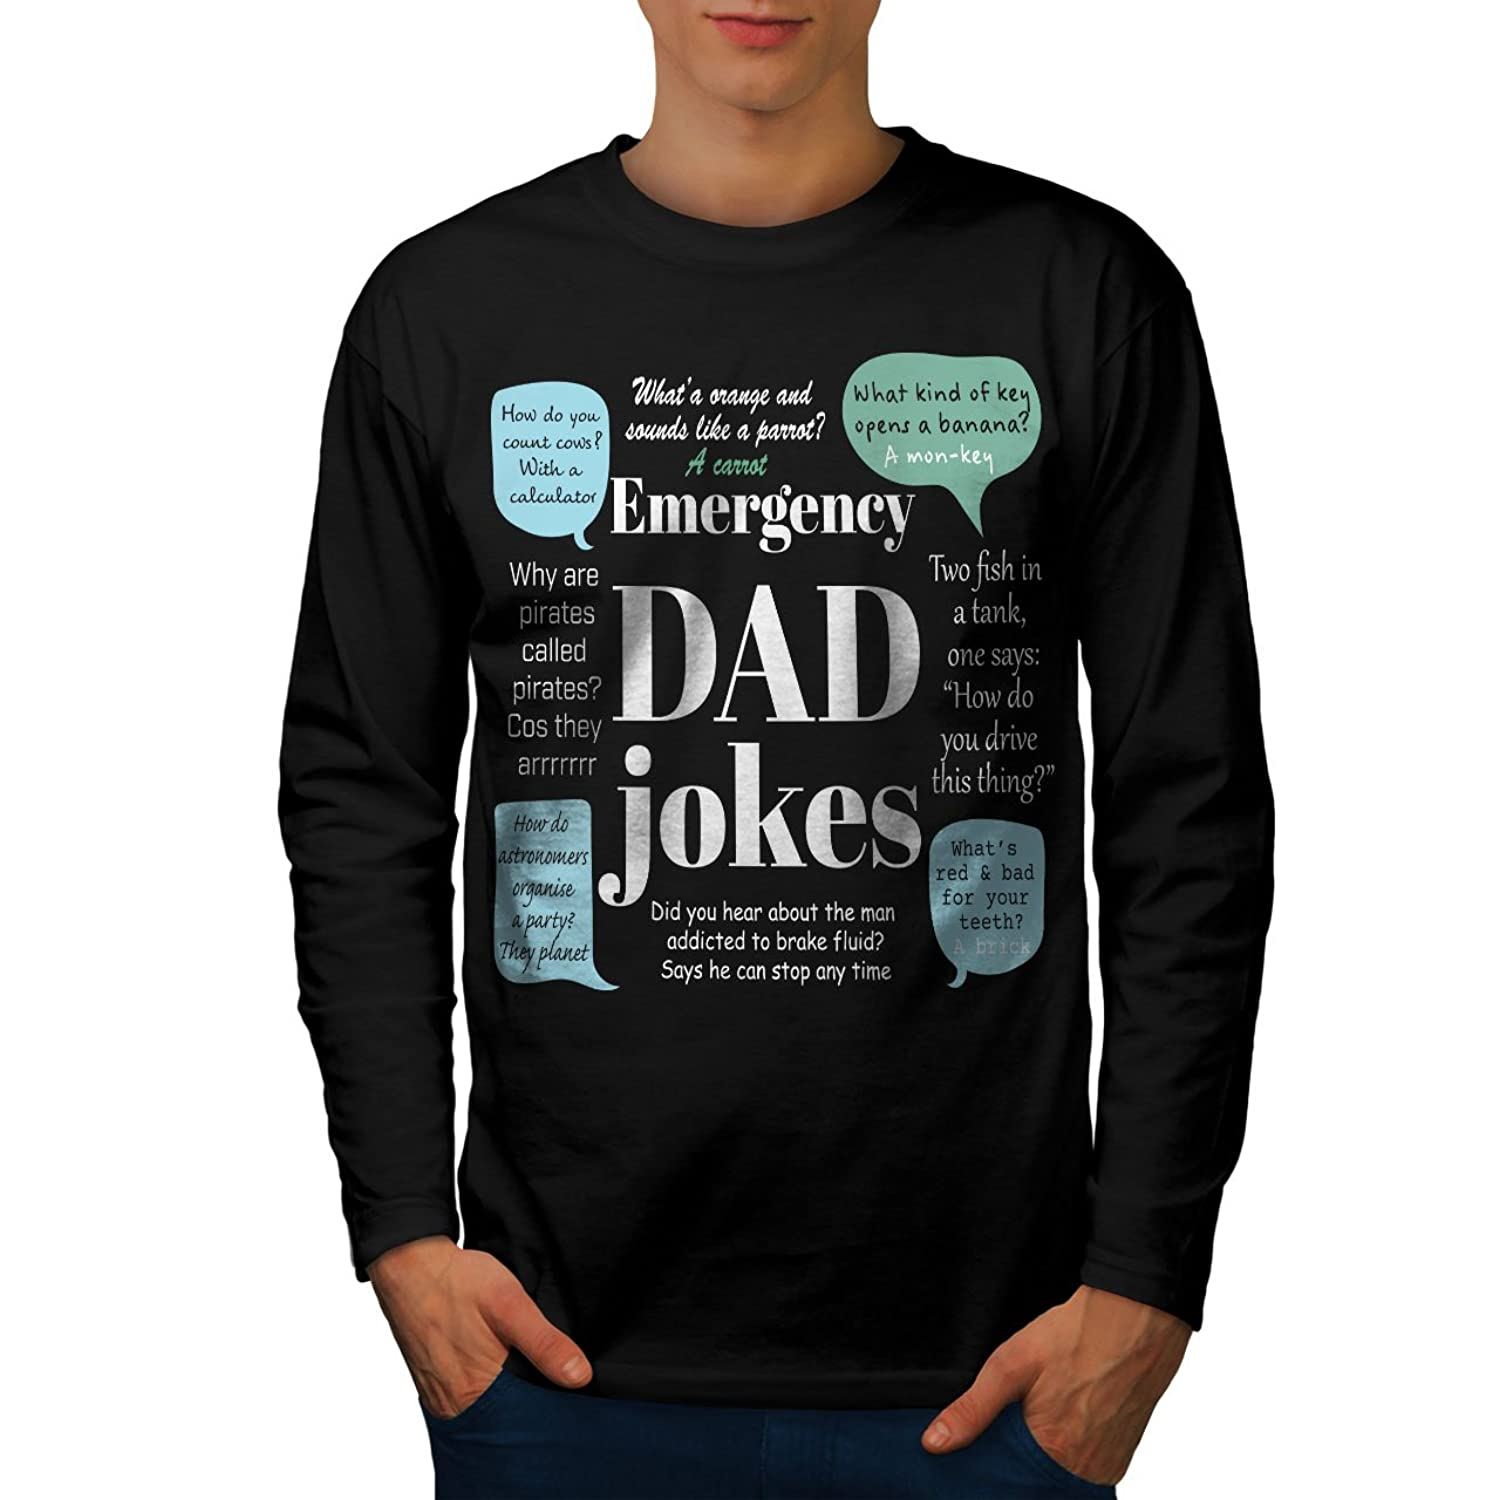 Amazon Wellcoda Bad Jokes Dad Puns Men S 2XL Long Sleeve T Shirt Clothing